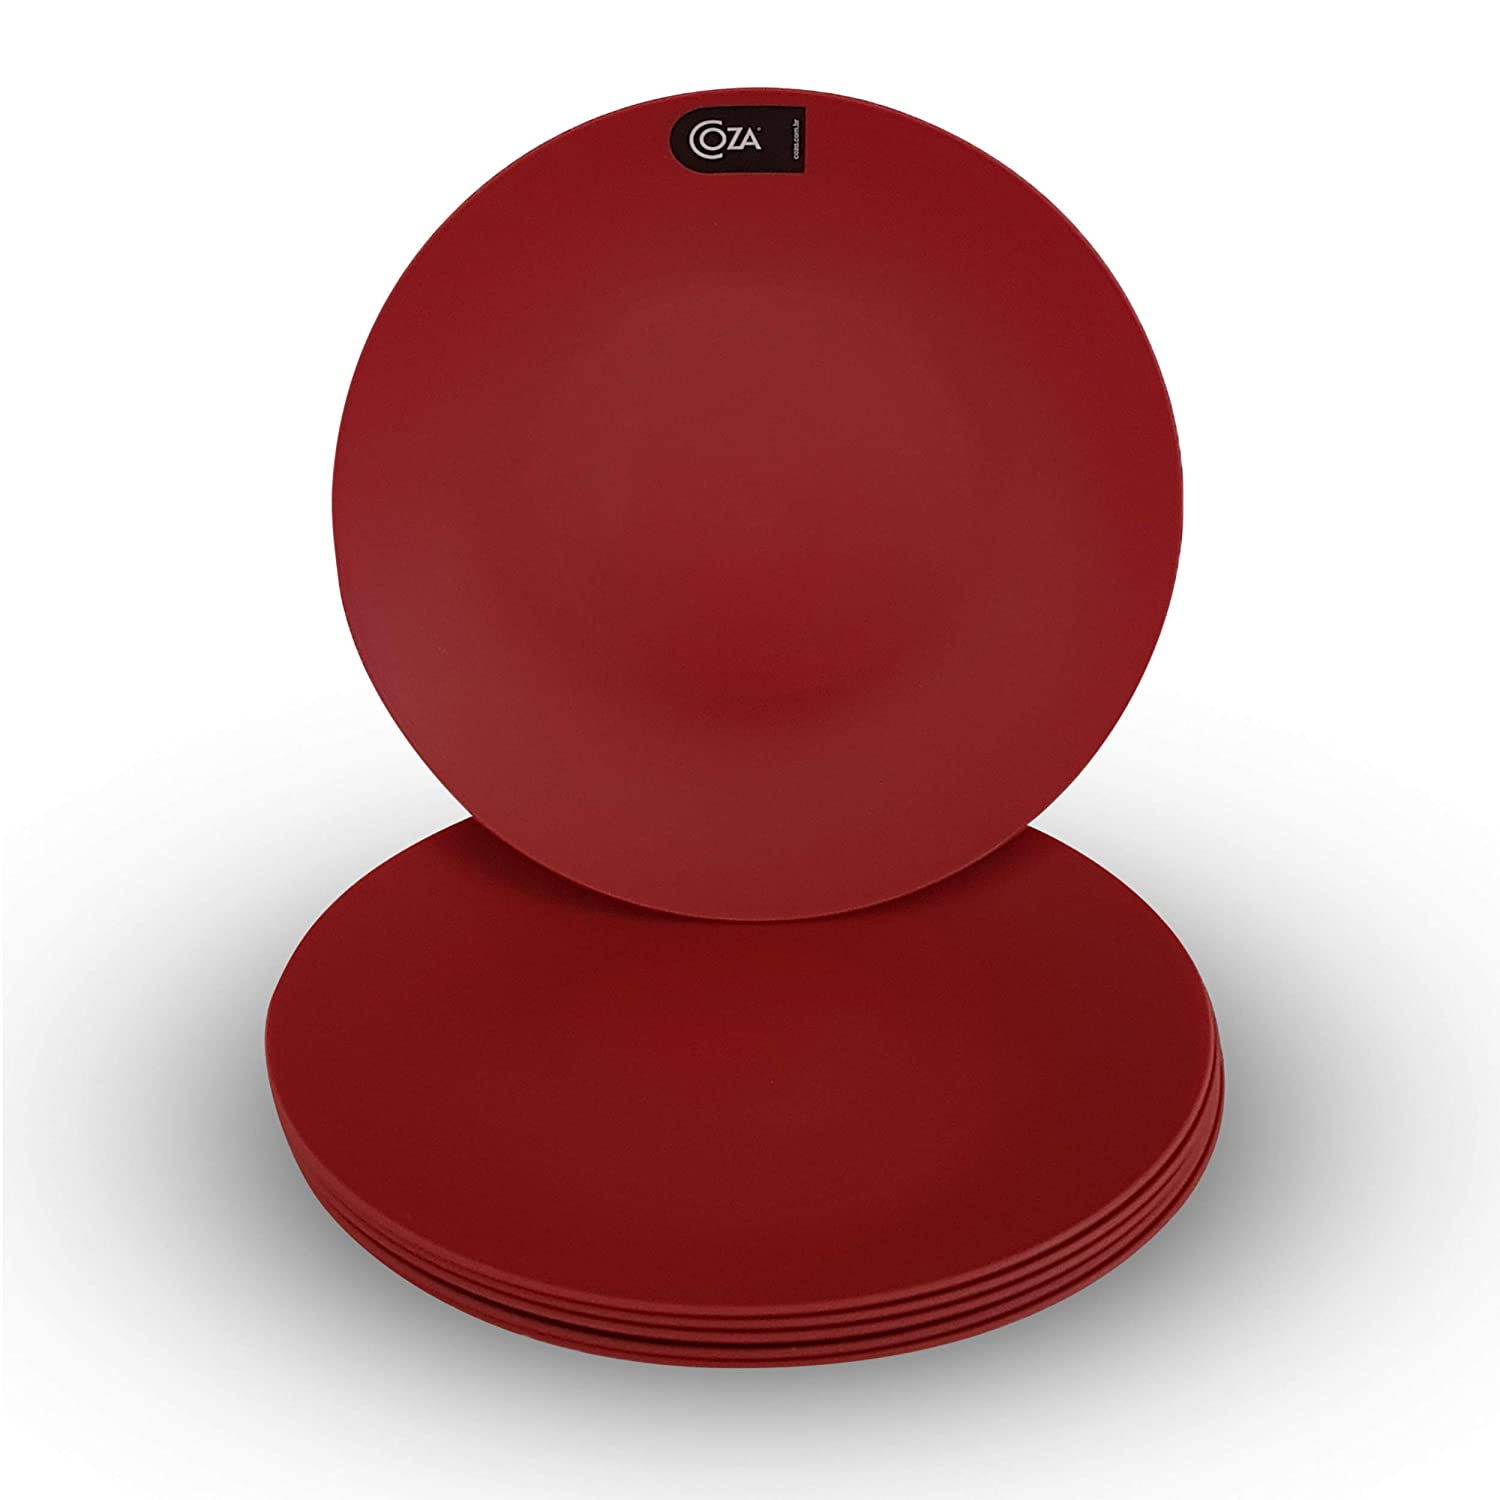 Coza Design- Unbreakable and Reusable Plastic Plate Set- BPA Free- Set of 6 (Bold Red)